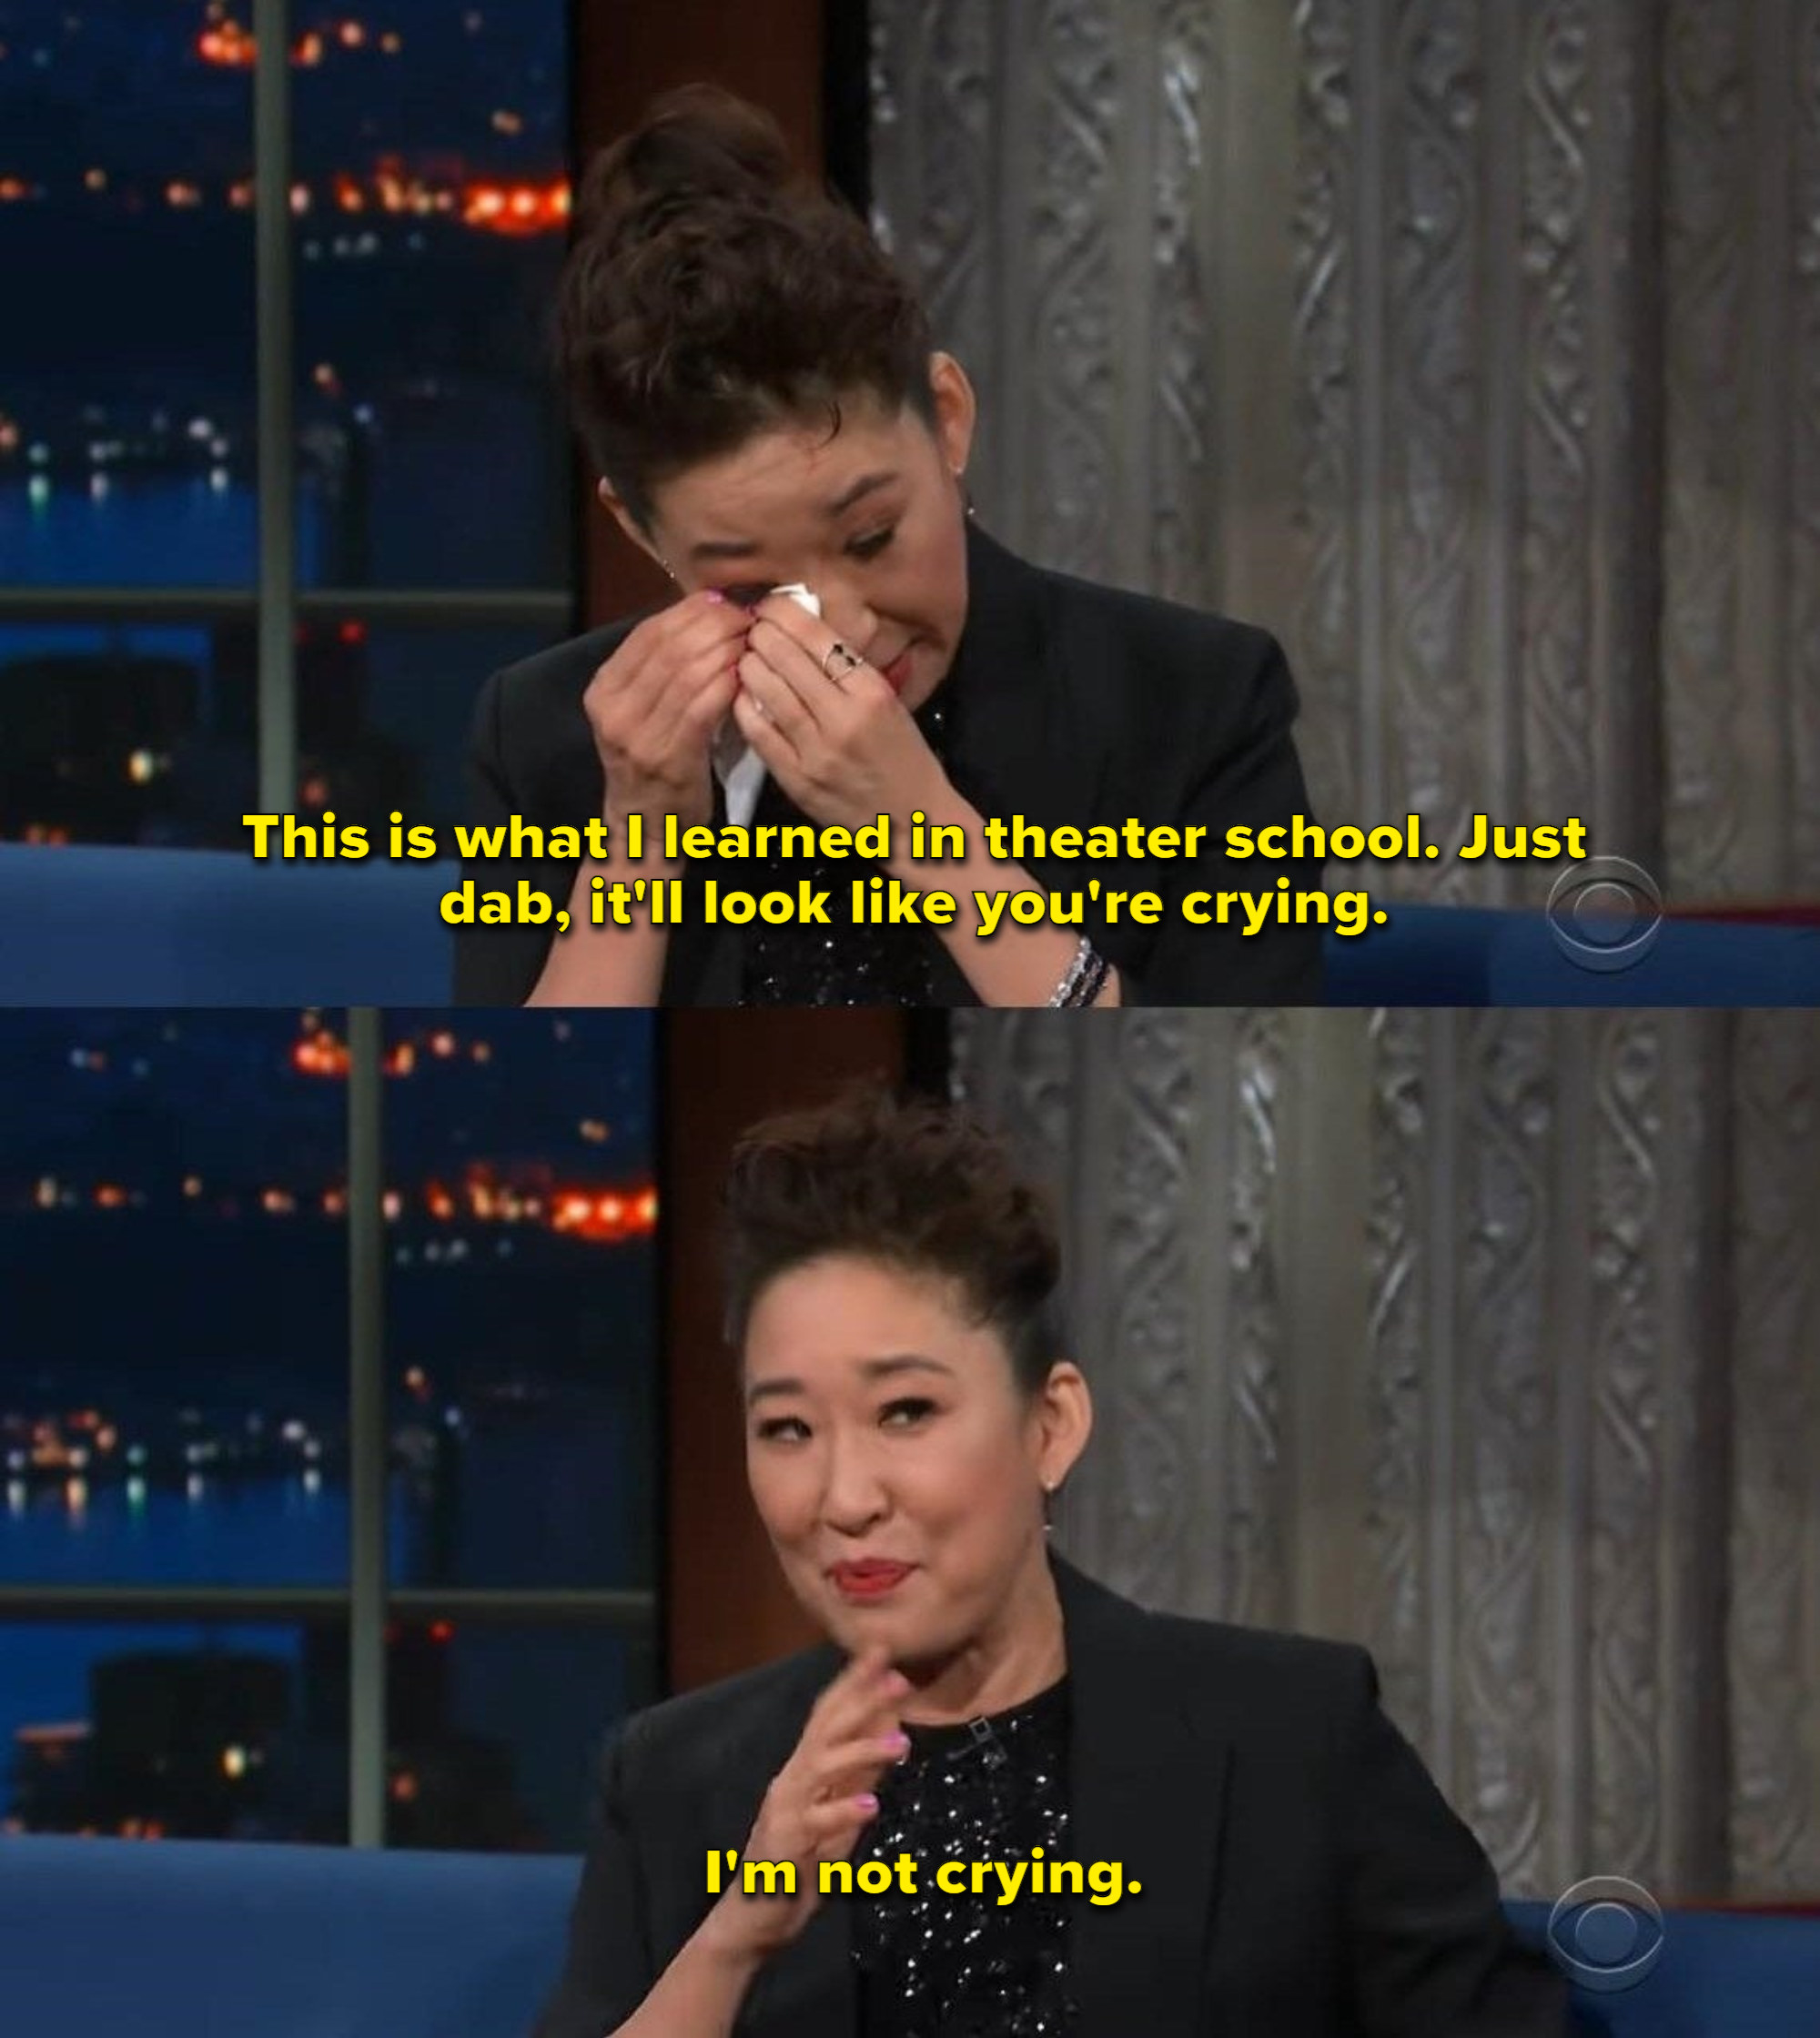 """Sandra Oh: """"This is what I learned in theater school. Just dab, it'll look like you're crying. I'm not crying"""""""